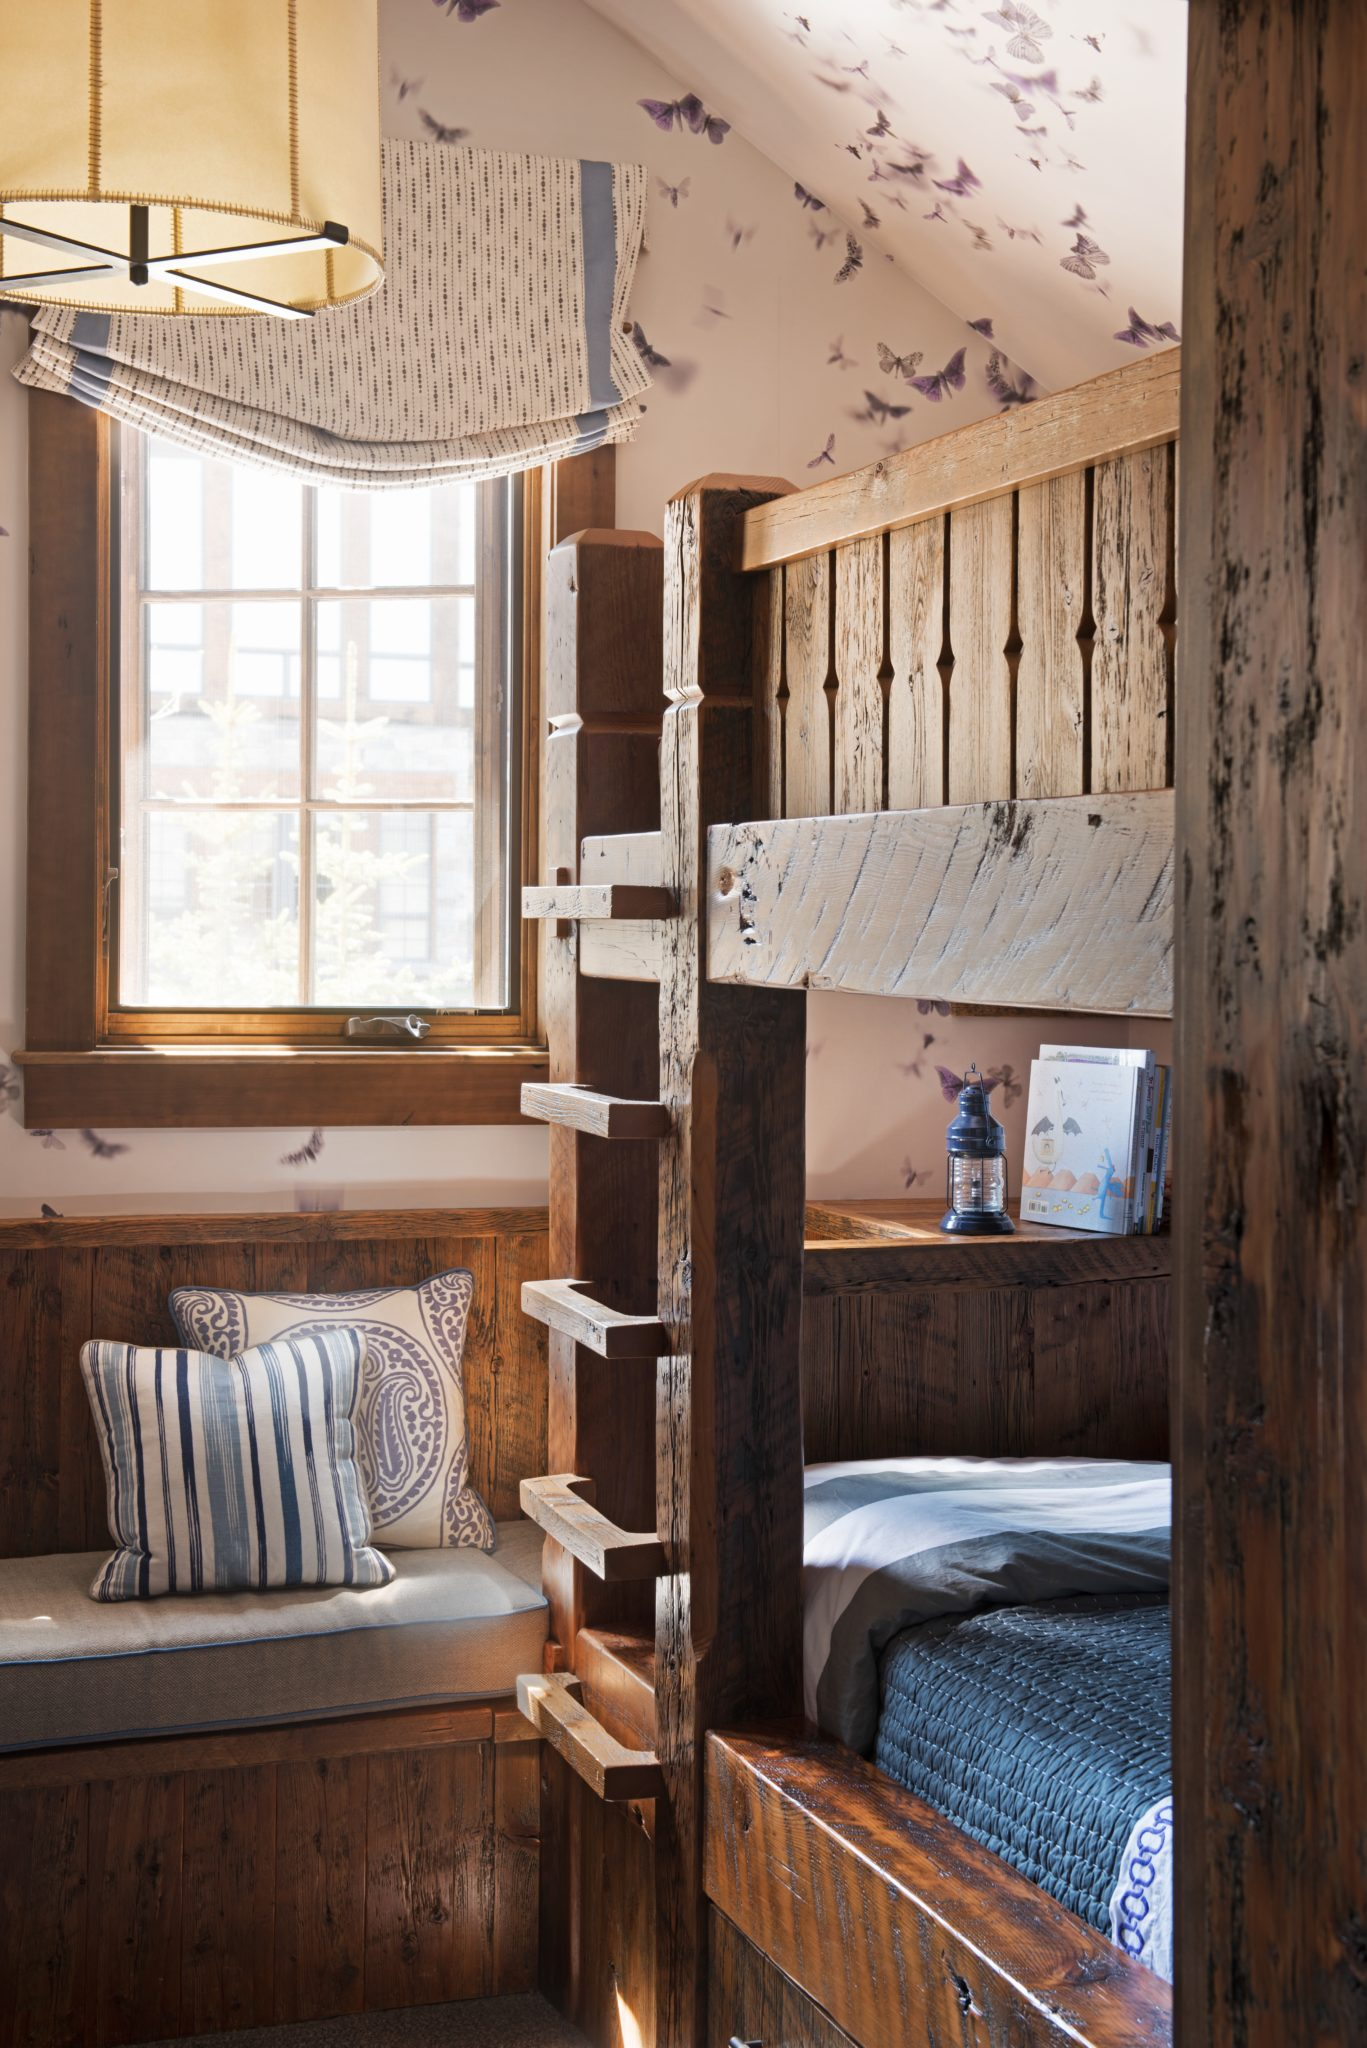 Montana Mountain Retreat Bunk Room with Custom Built Bunk Beds and Cabinets by Kelly Hohla Interiors